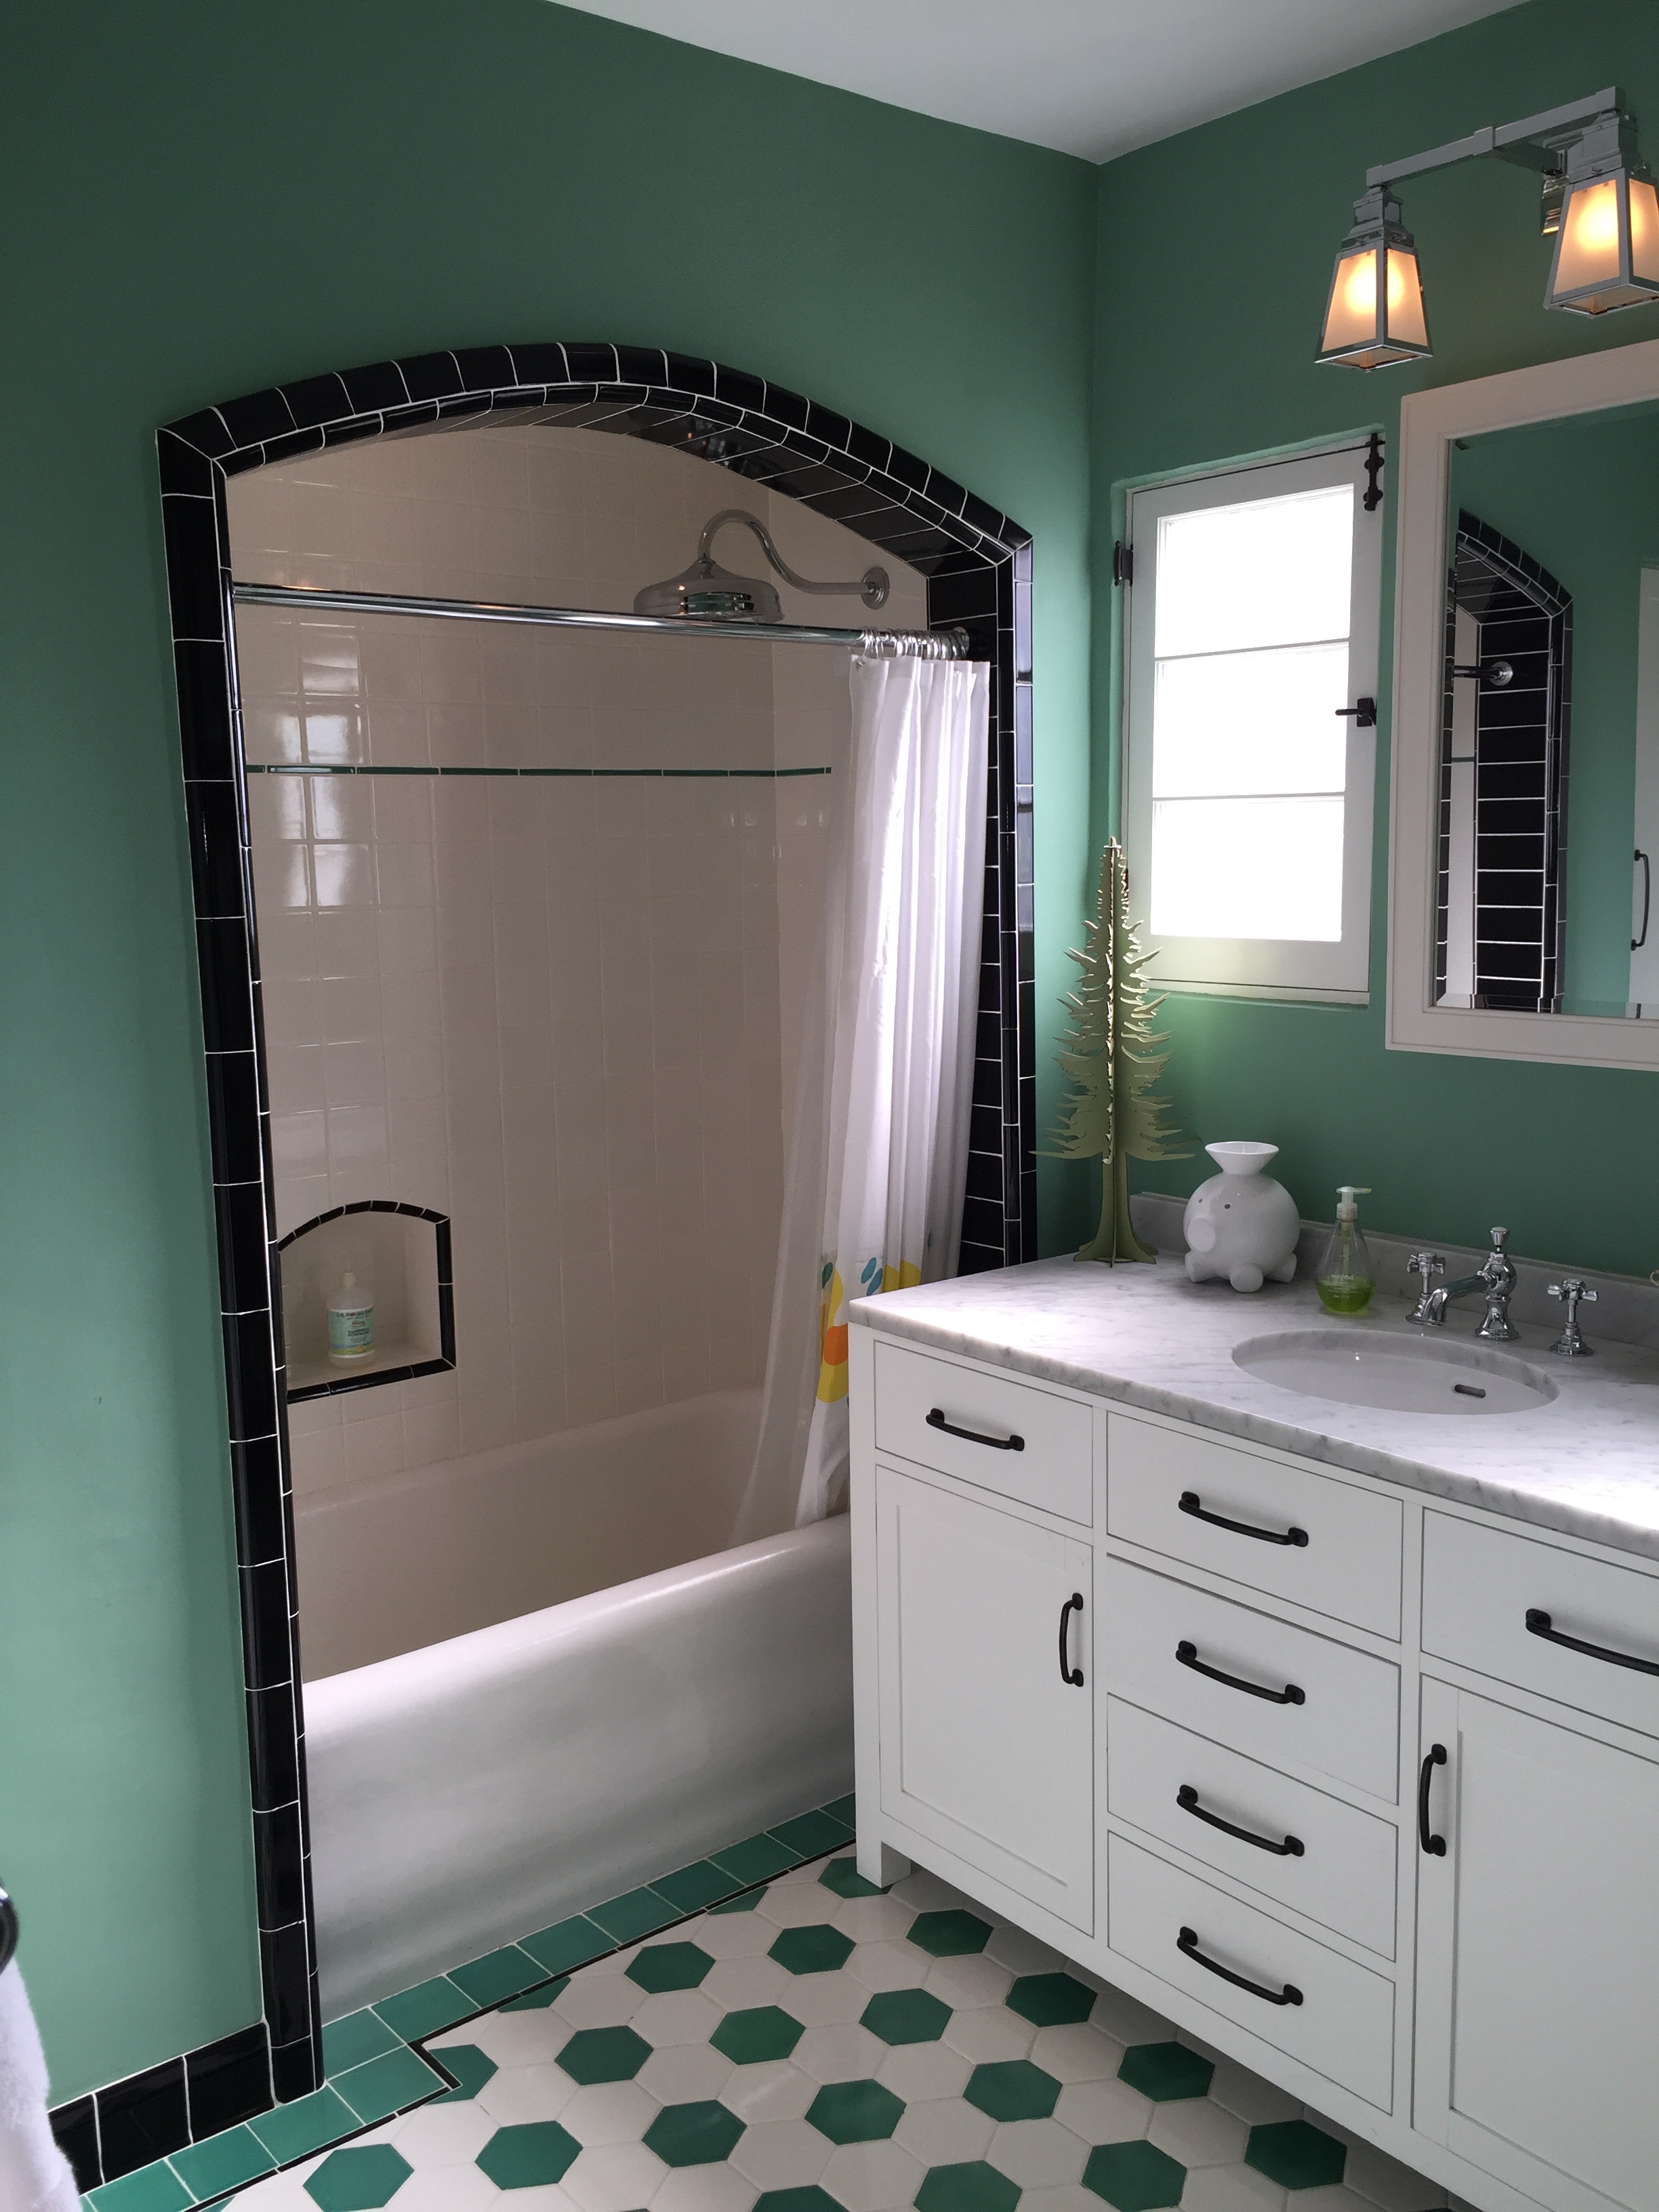 1927 bathroom re-created to replace a dated 60's remodel.  Modern features, 1920's looks.